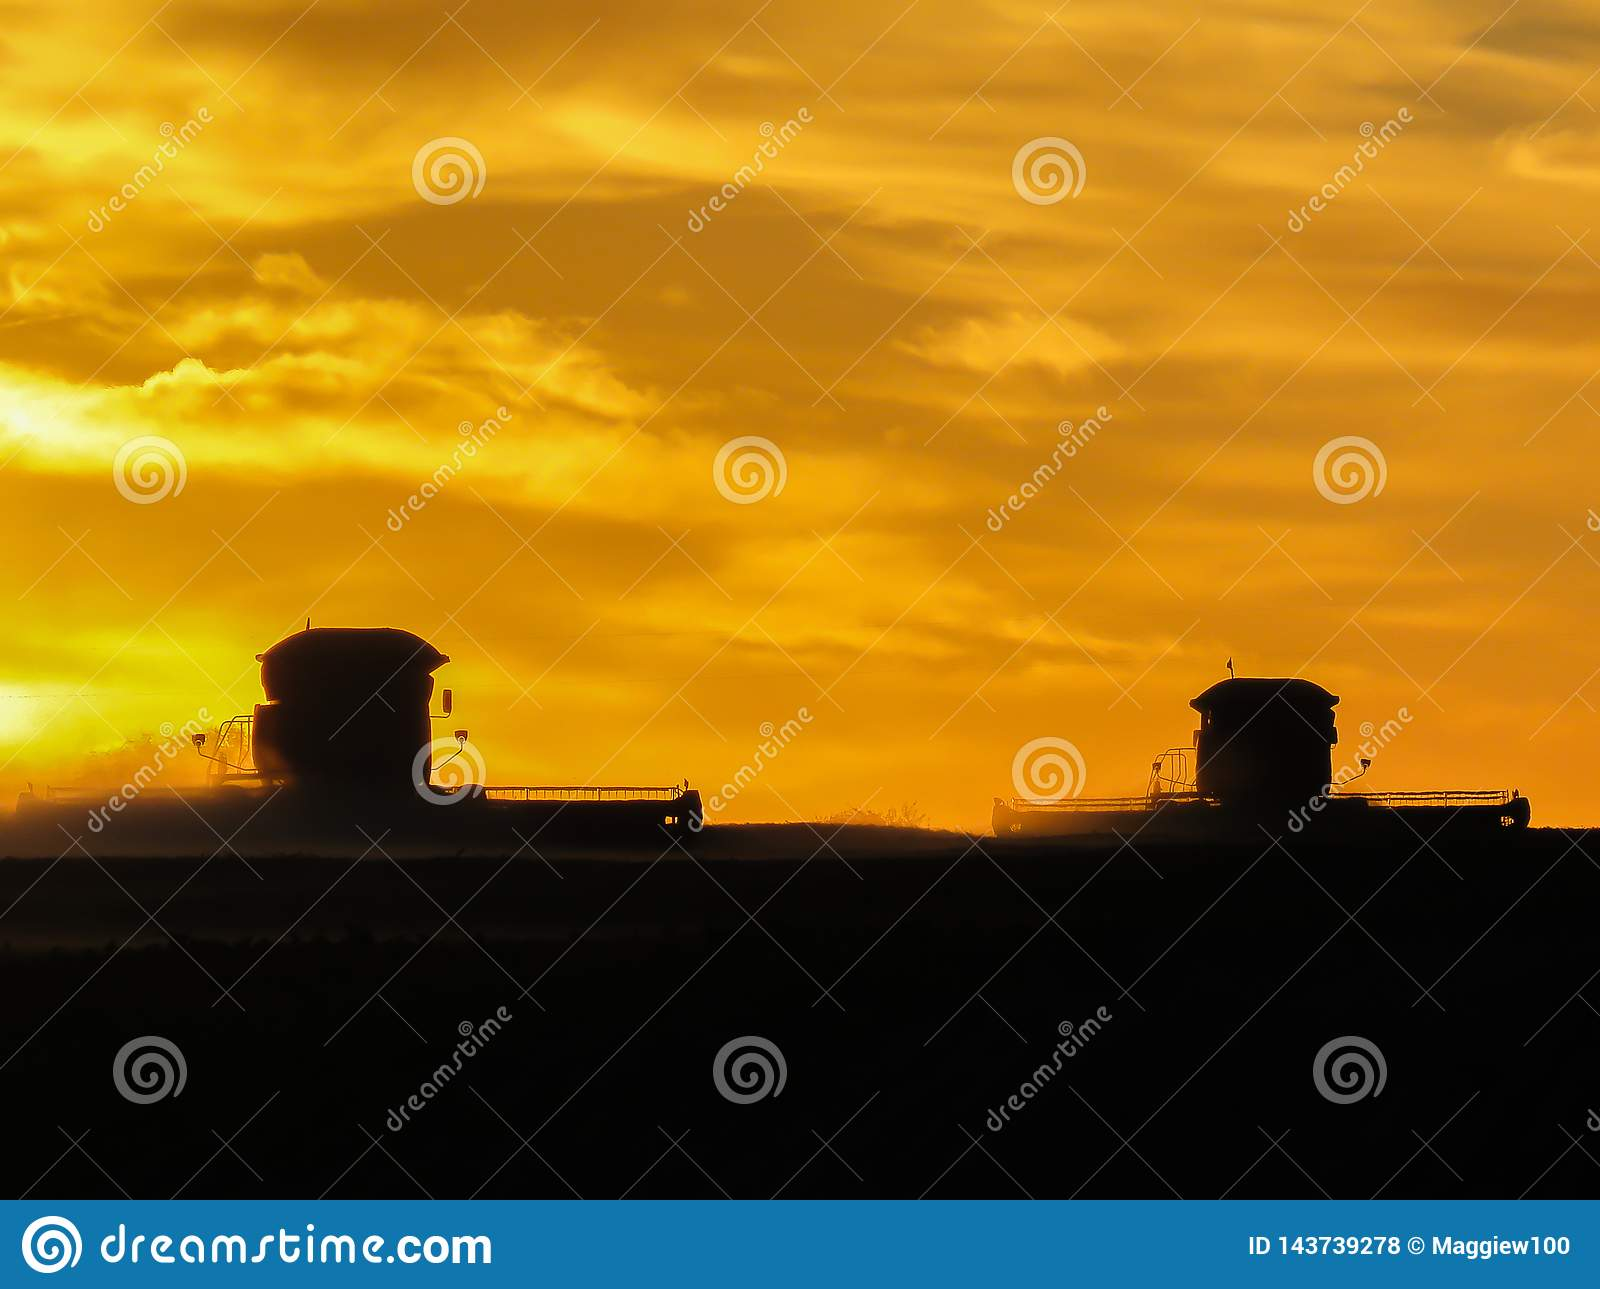 Combines in the sunset